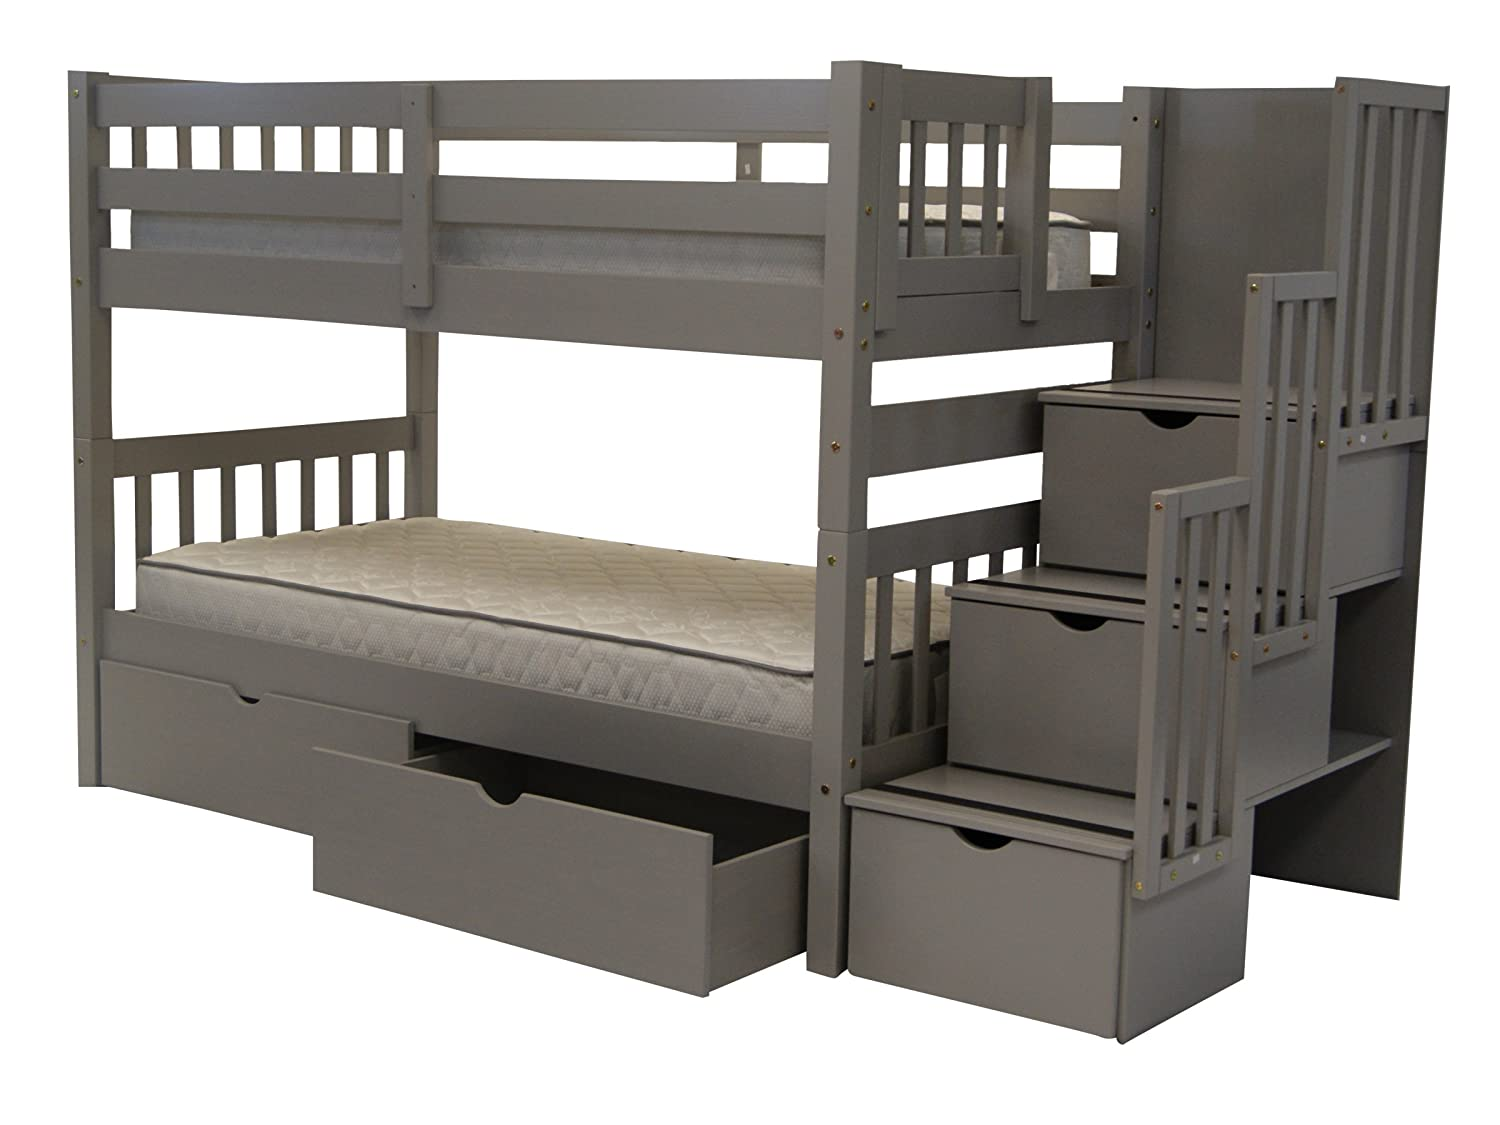 Advantages Of King Dimension Loft Bed With Stairs Amazon.com: Bedz King Stairway Bunk Beds Twin over Twin with 3 Drawers in  the Steps and 2 Under Bed Drawers, Gray: Kitchen u0026 Dining